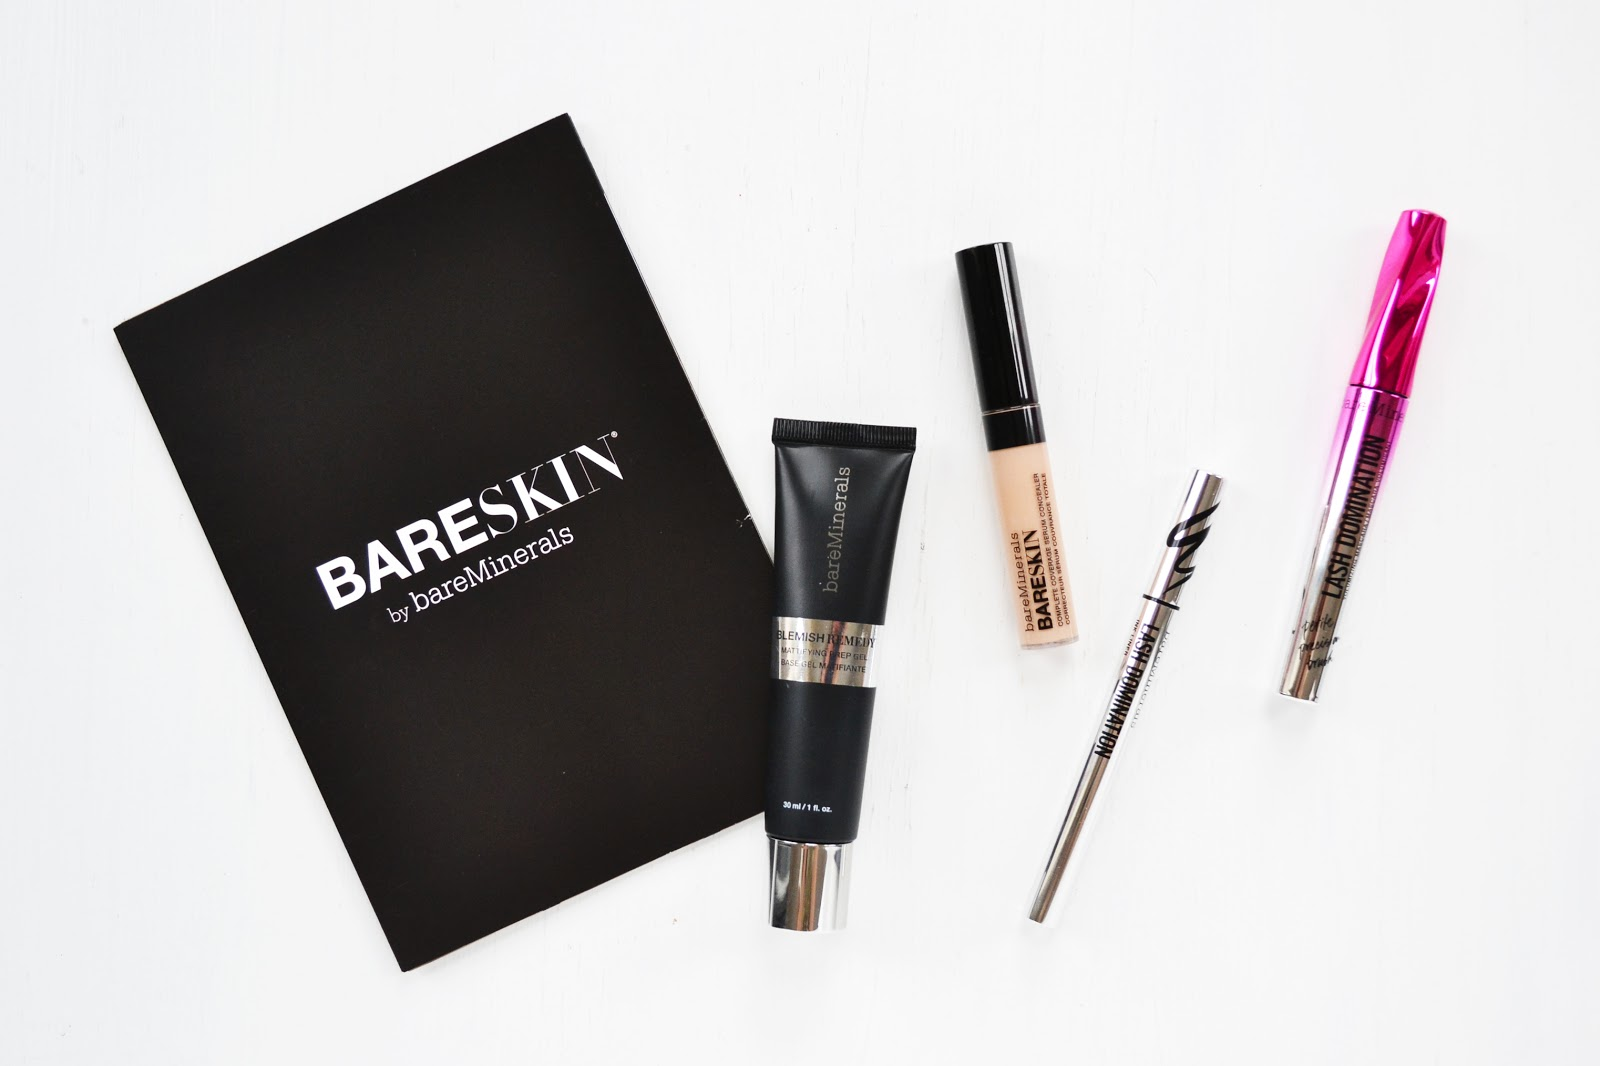 New Make-Up For Spring From bareMinerals